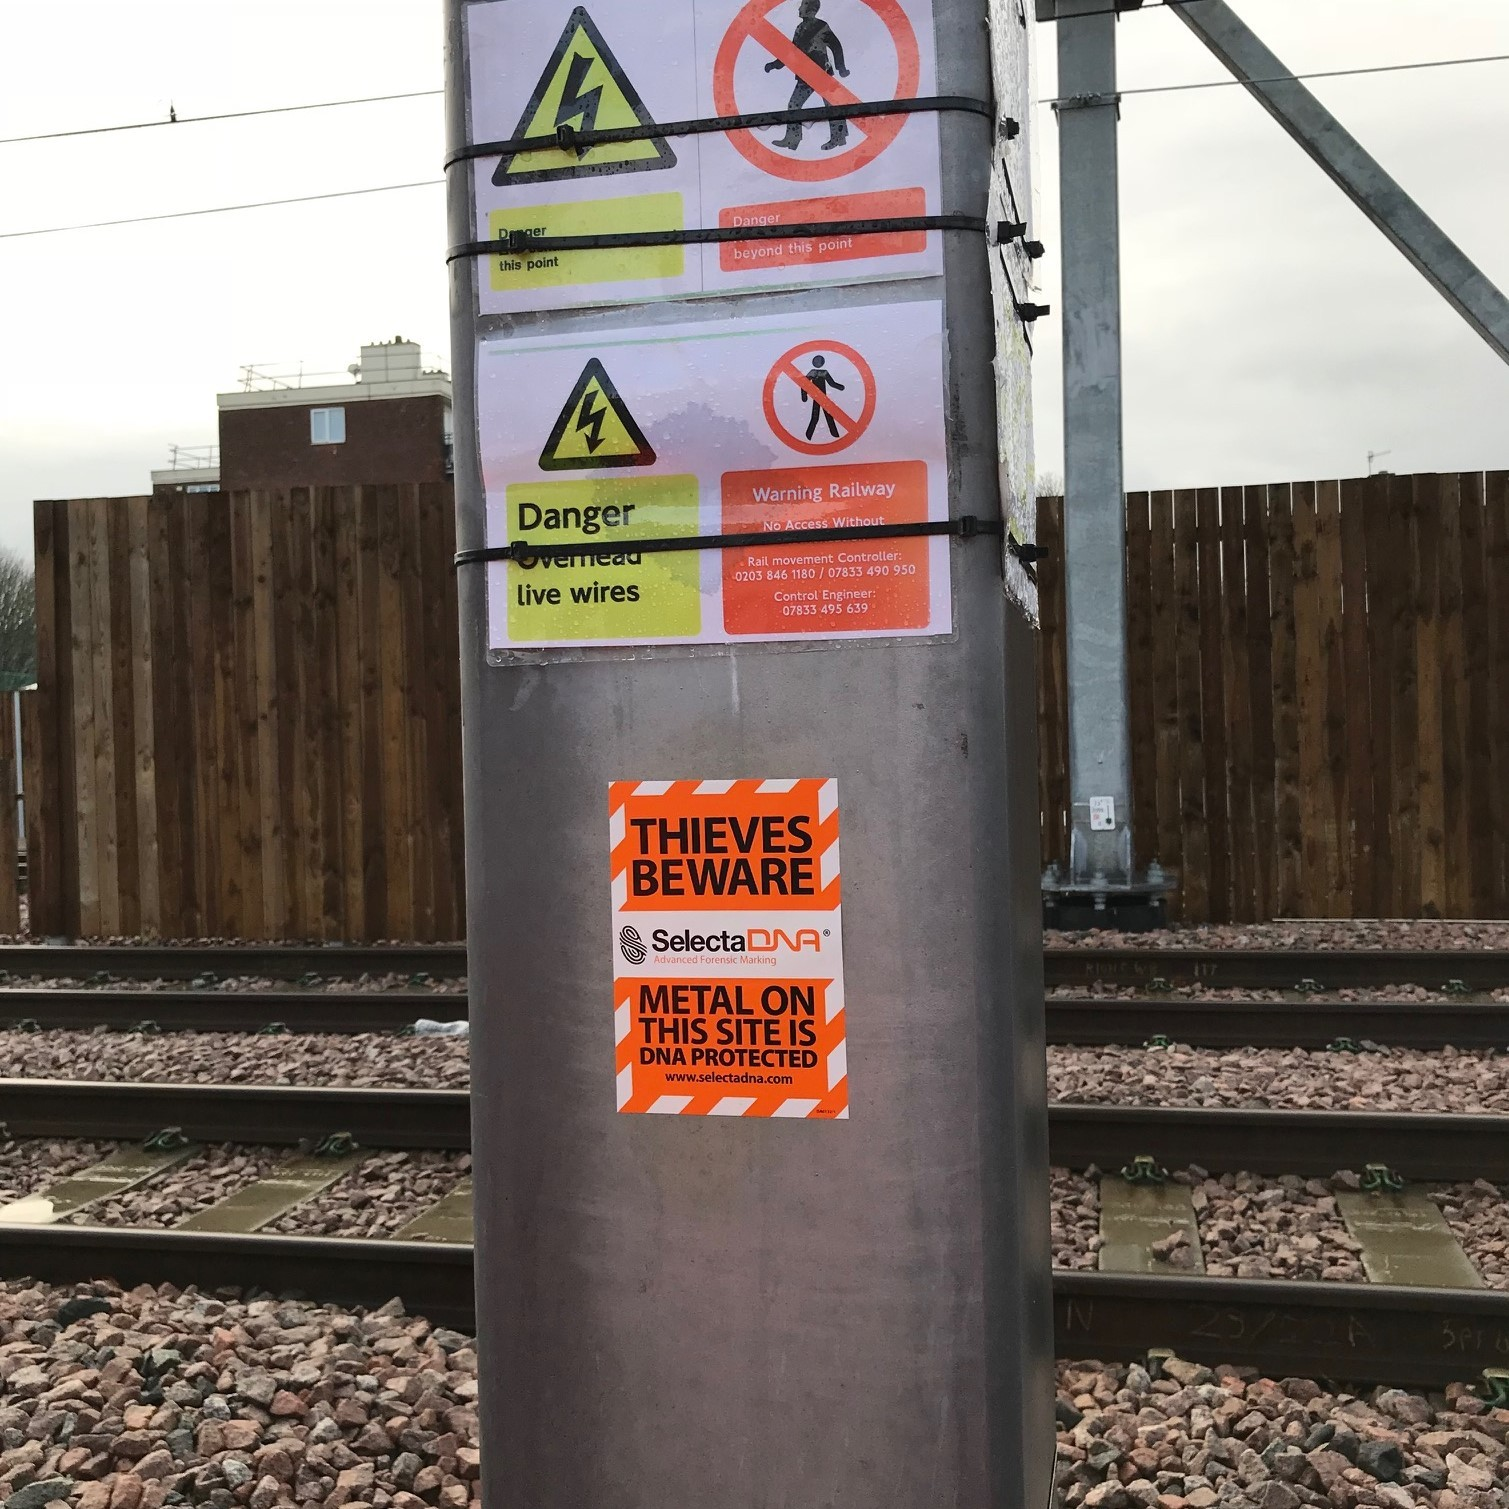 Keeping Crossrail Safe: No Thefts In Nine Months